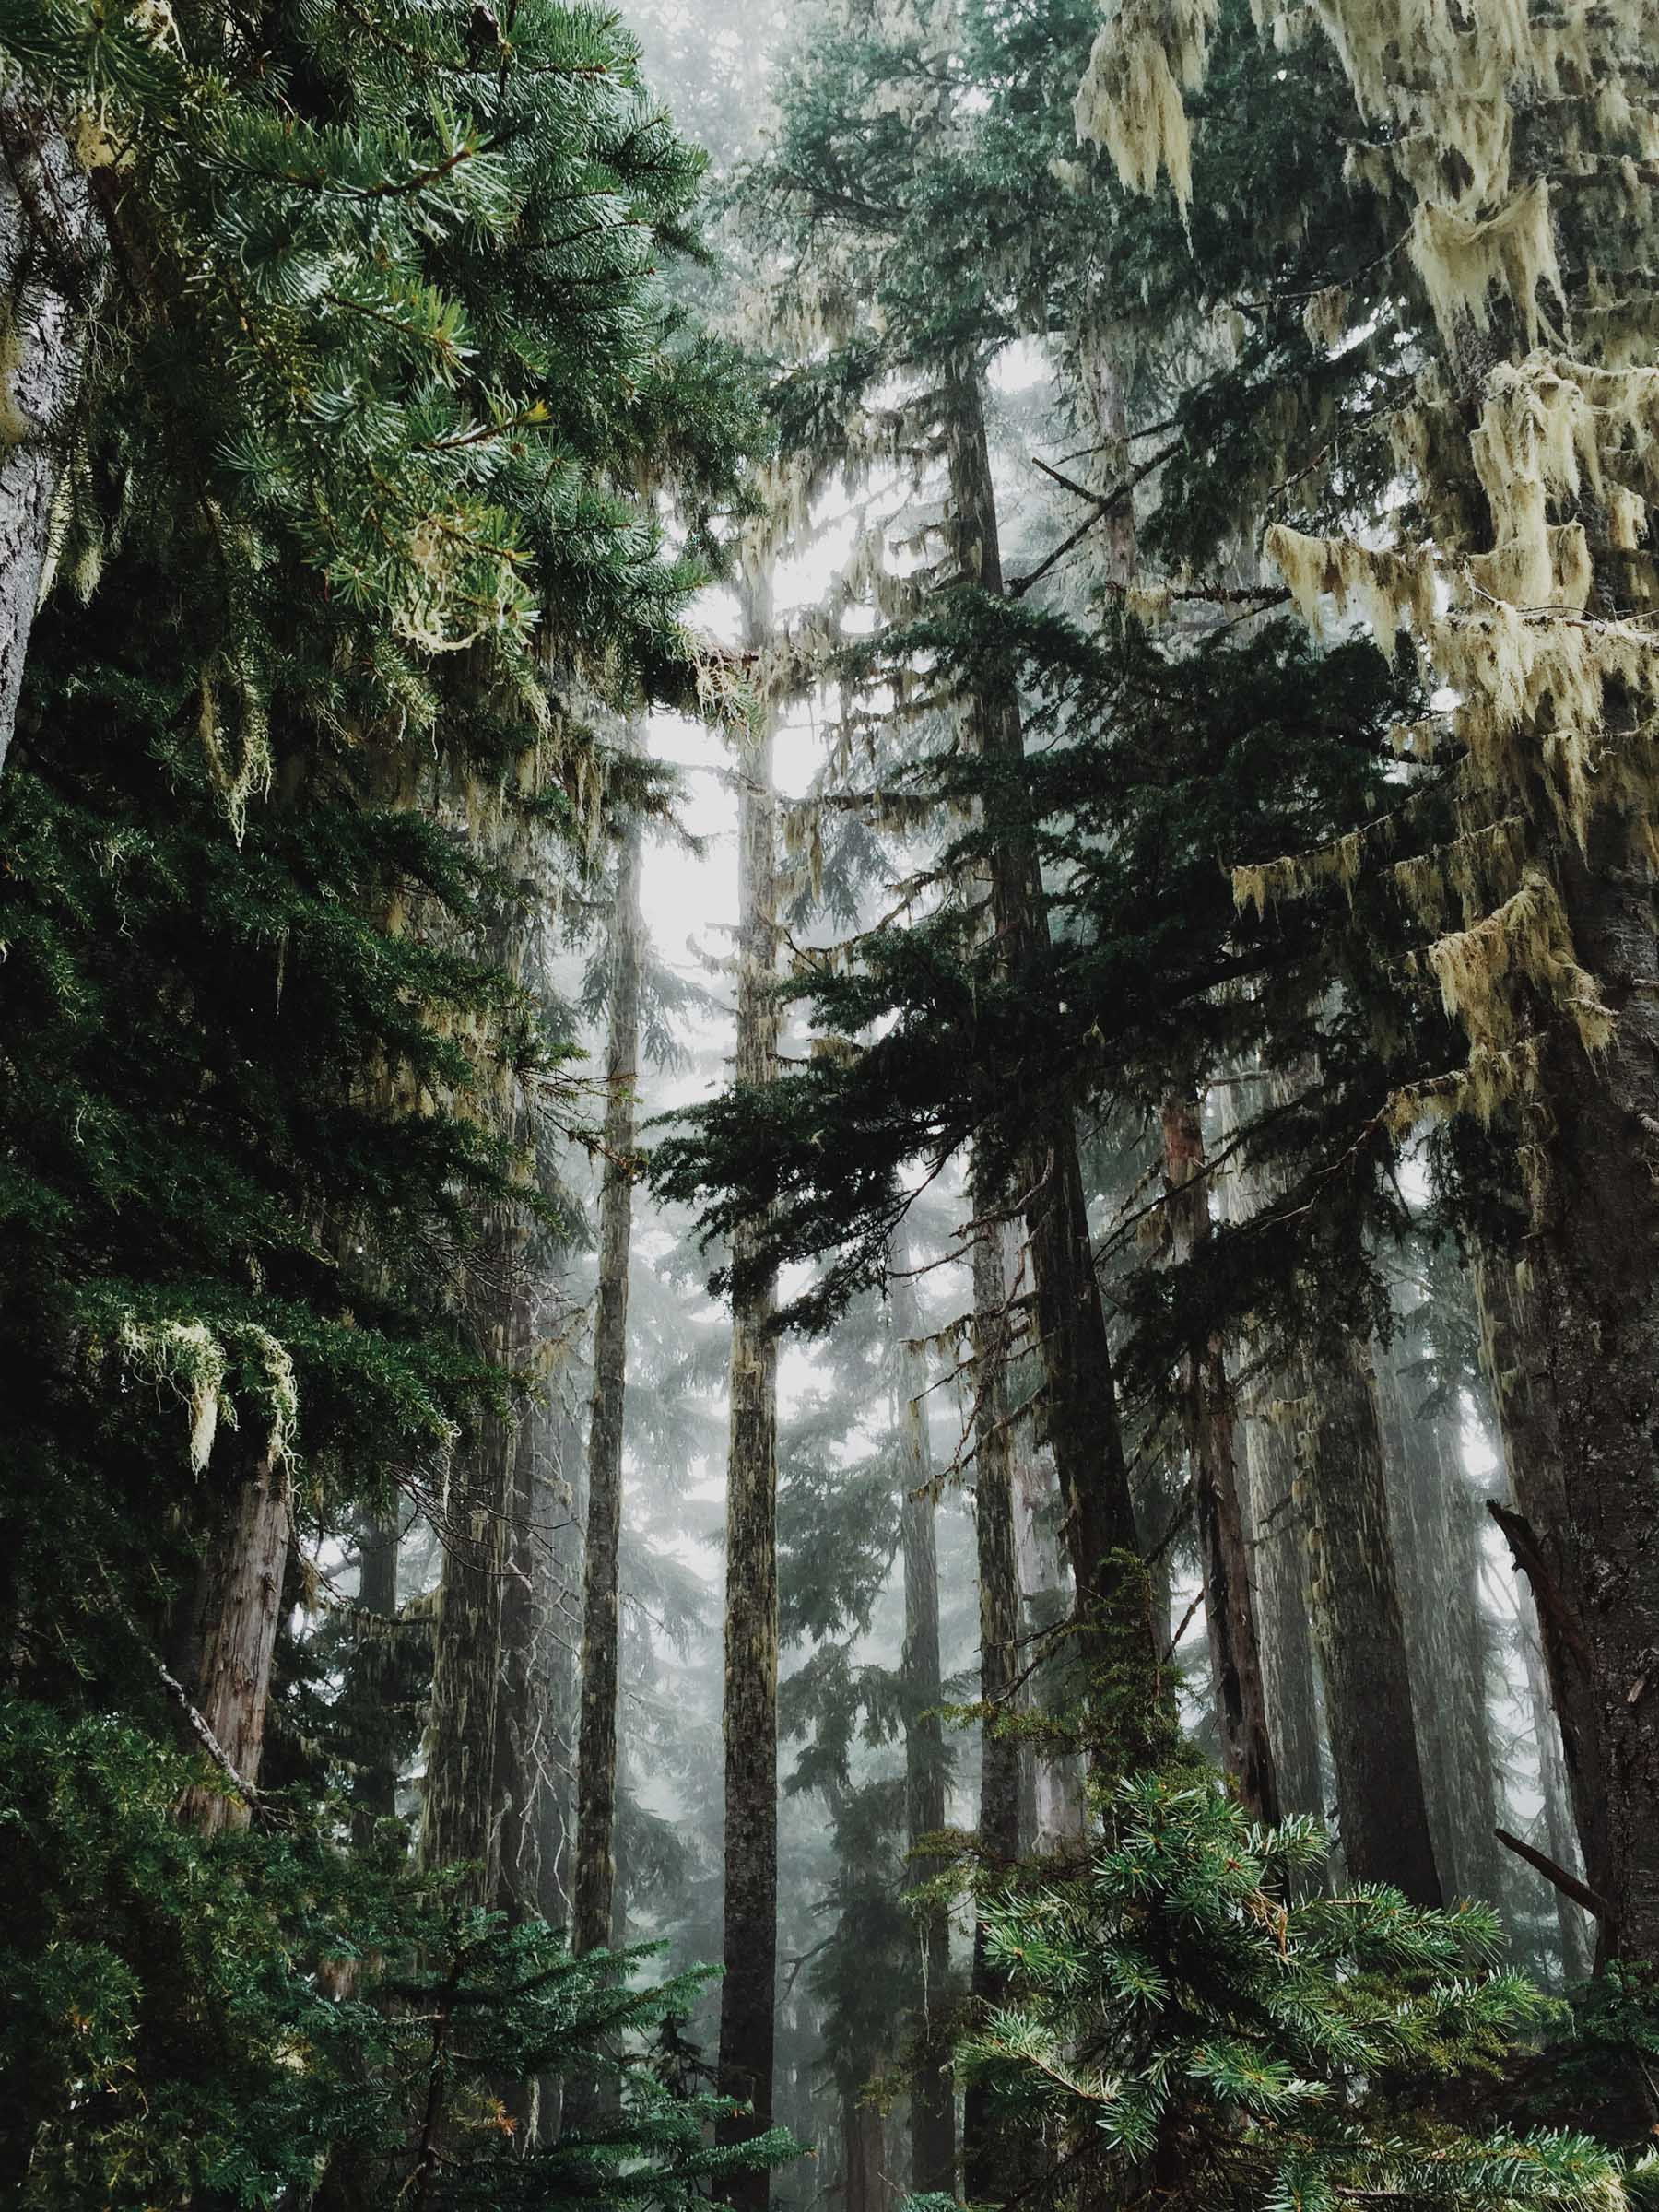 Outdoor adventure in Olympic National Park | Katch Silva